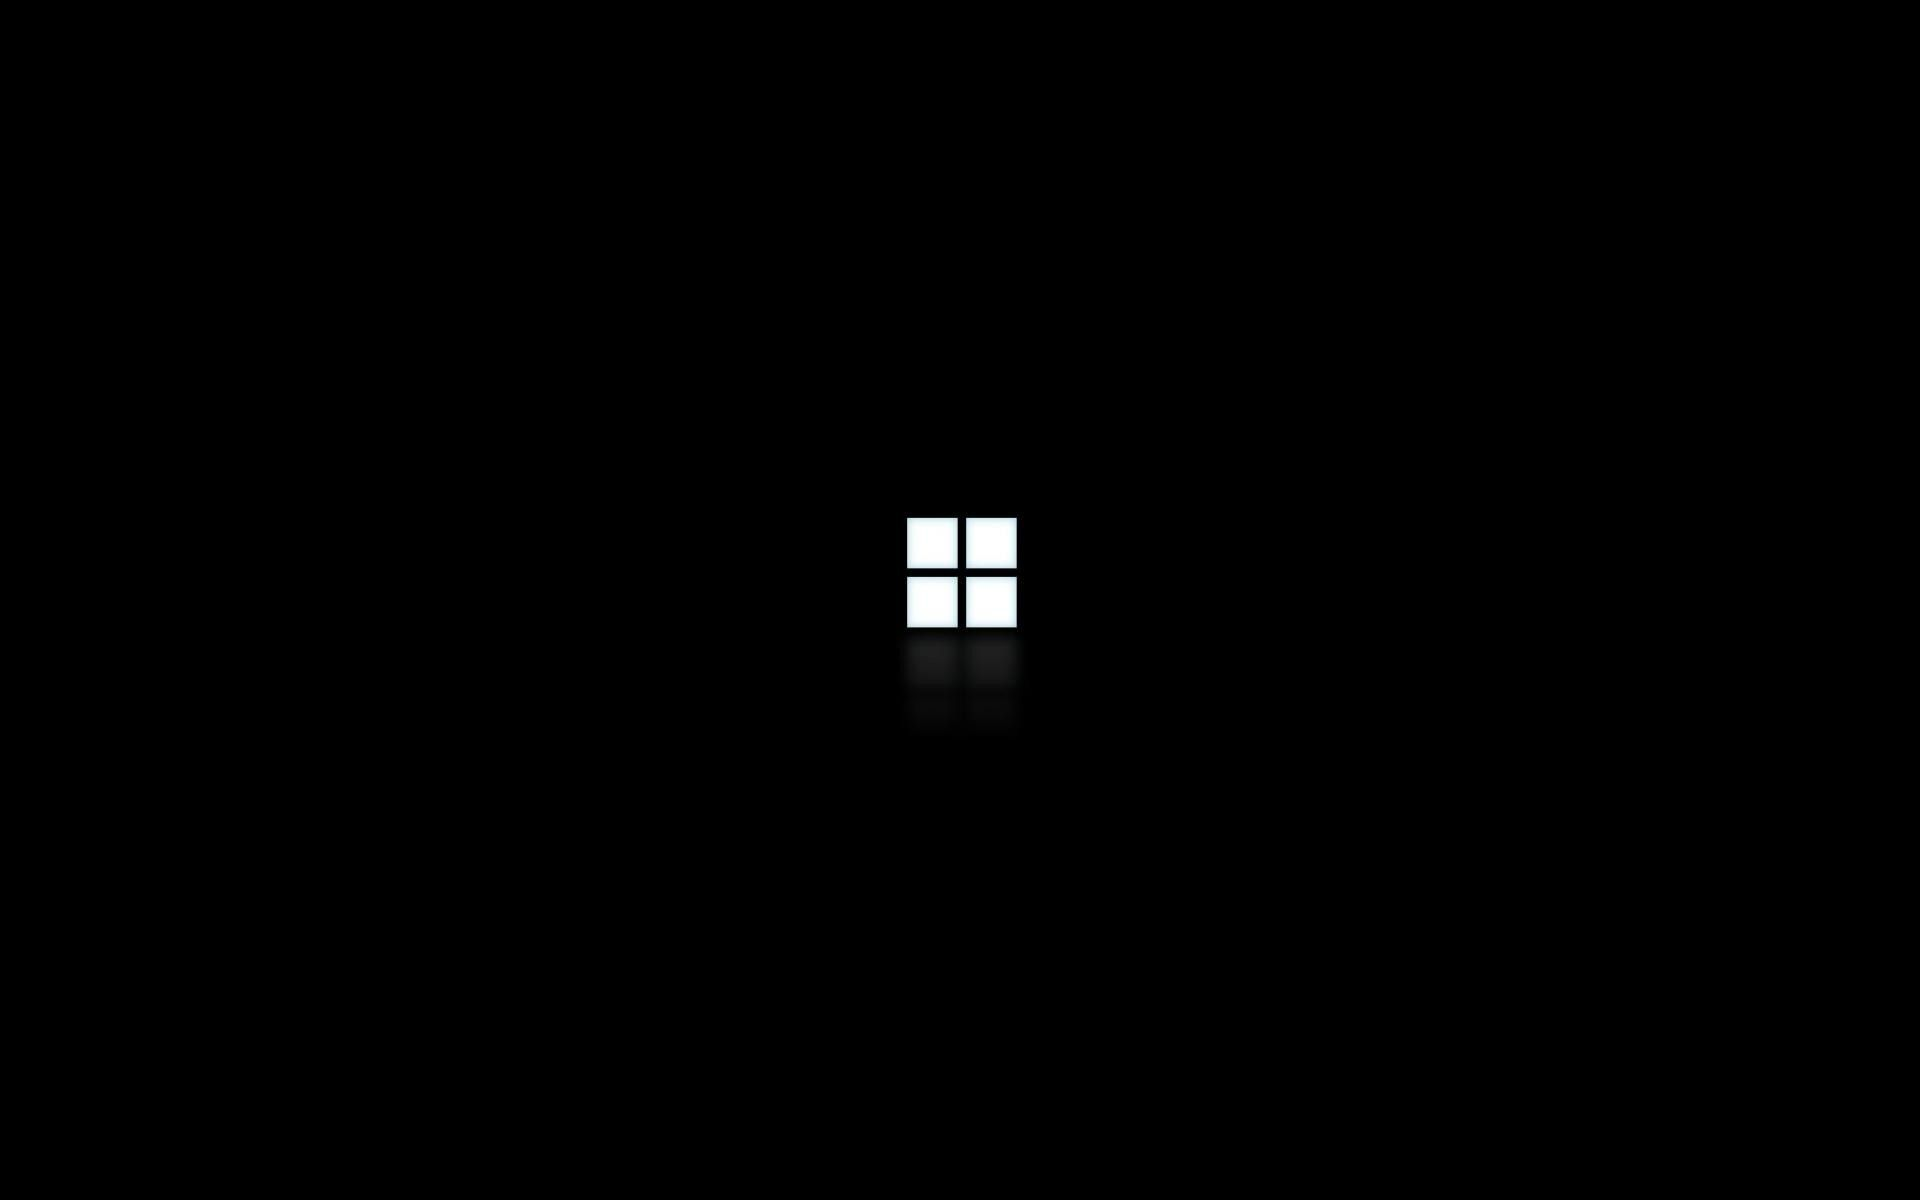 Windows 7 Dark Wallpaper Minimalist desktop wallpaper